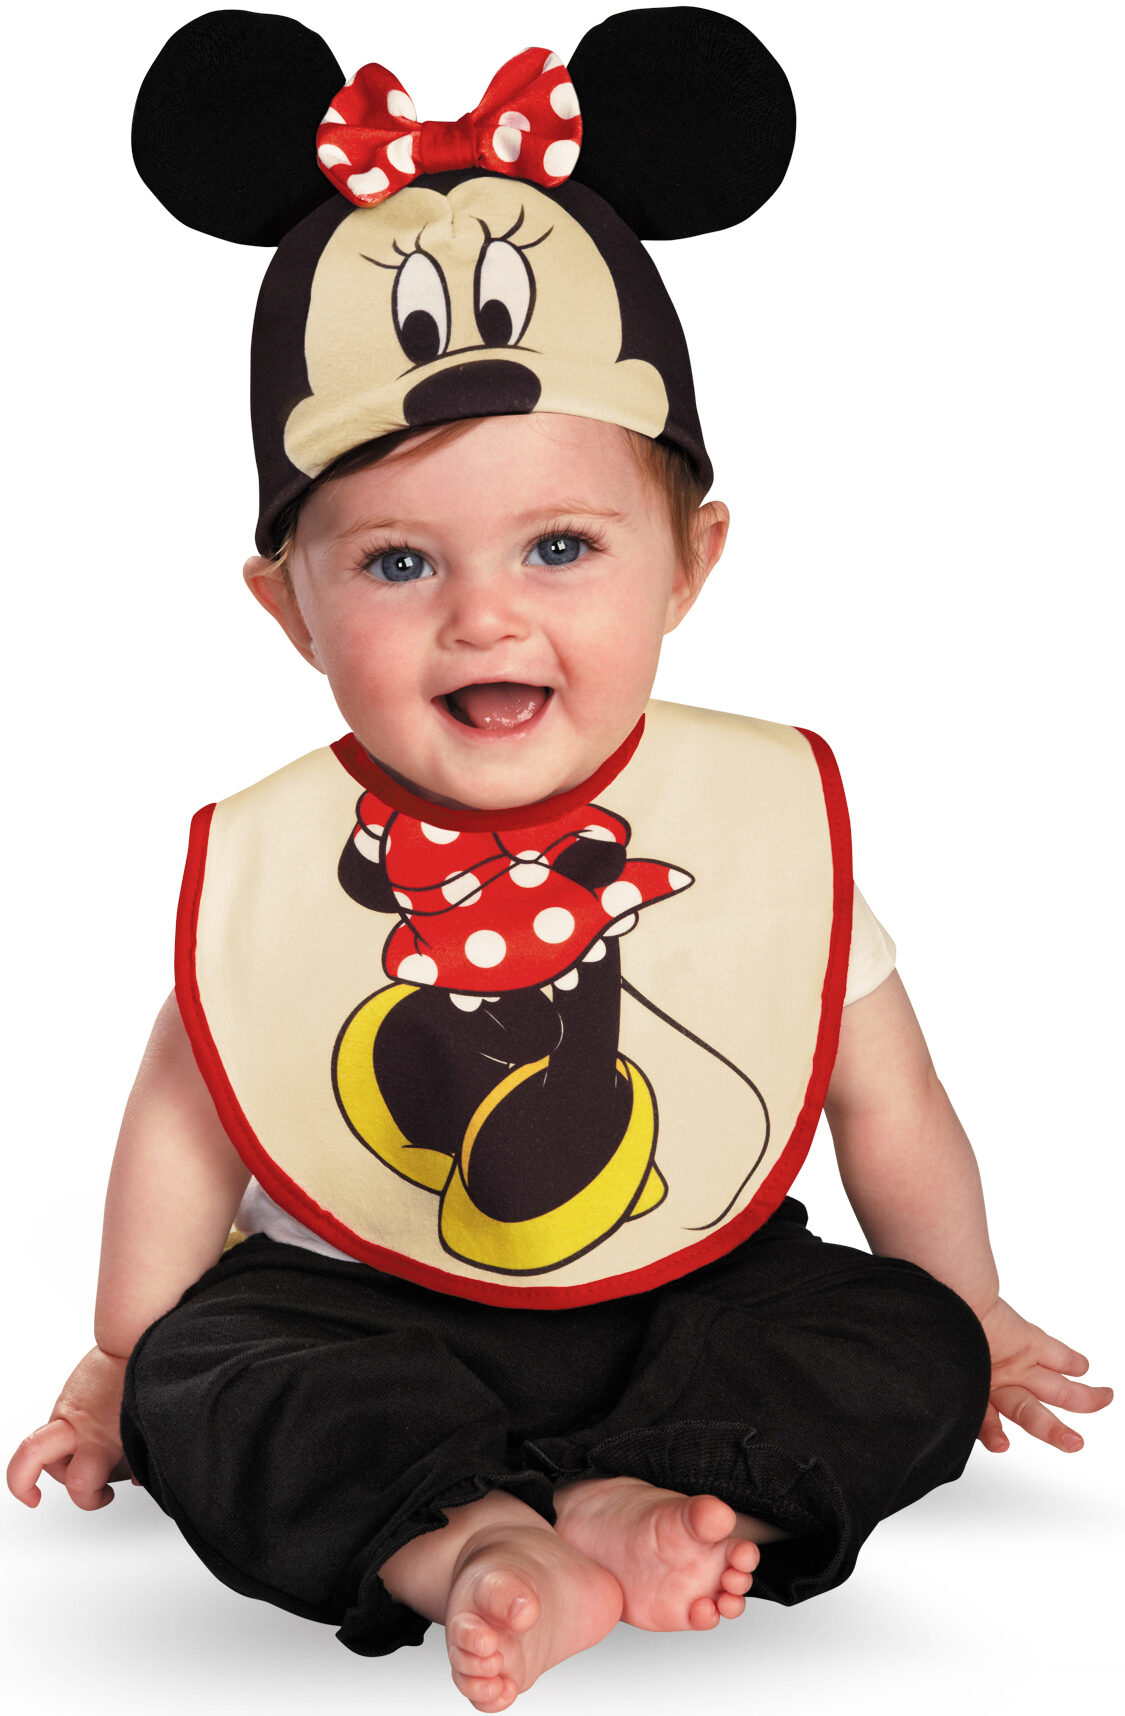 Minnie Mouse Bib and Hat Baby Costume  sc 1 st  Mr. Costumes & Minnie Mouse Bib and Hat Baby Costume - Mr. Costumes